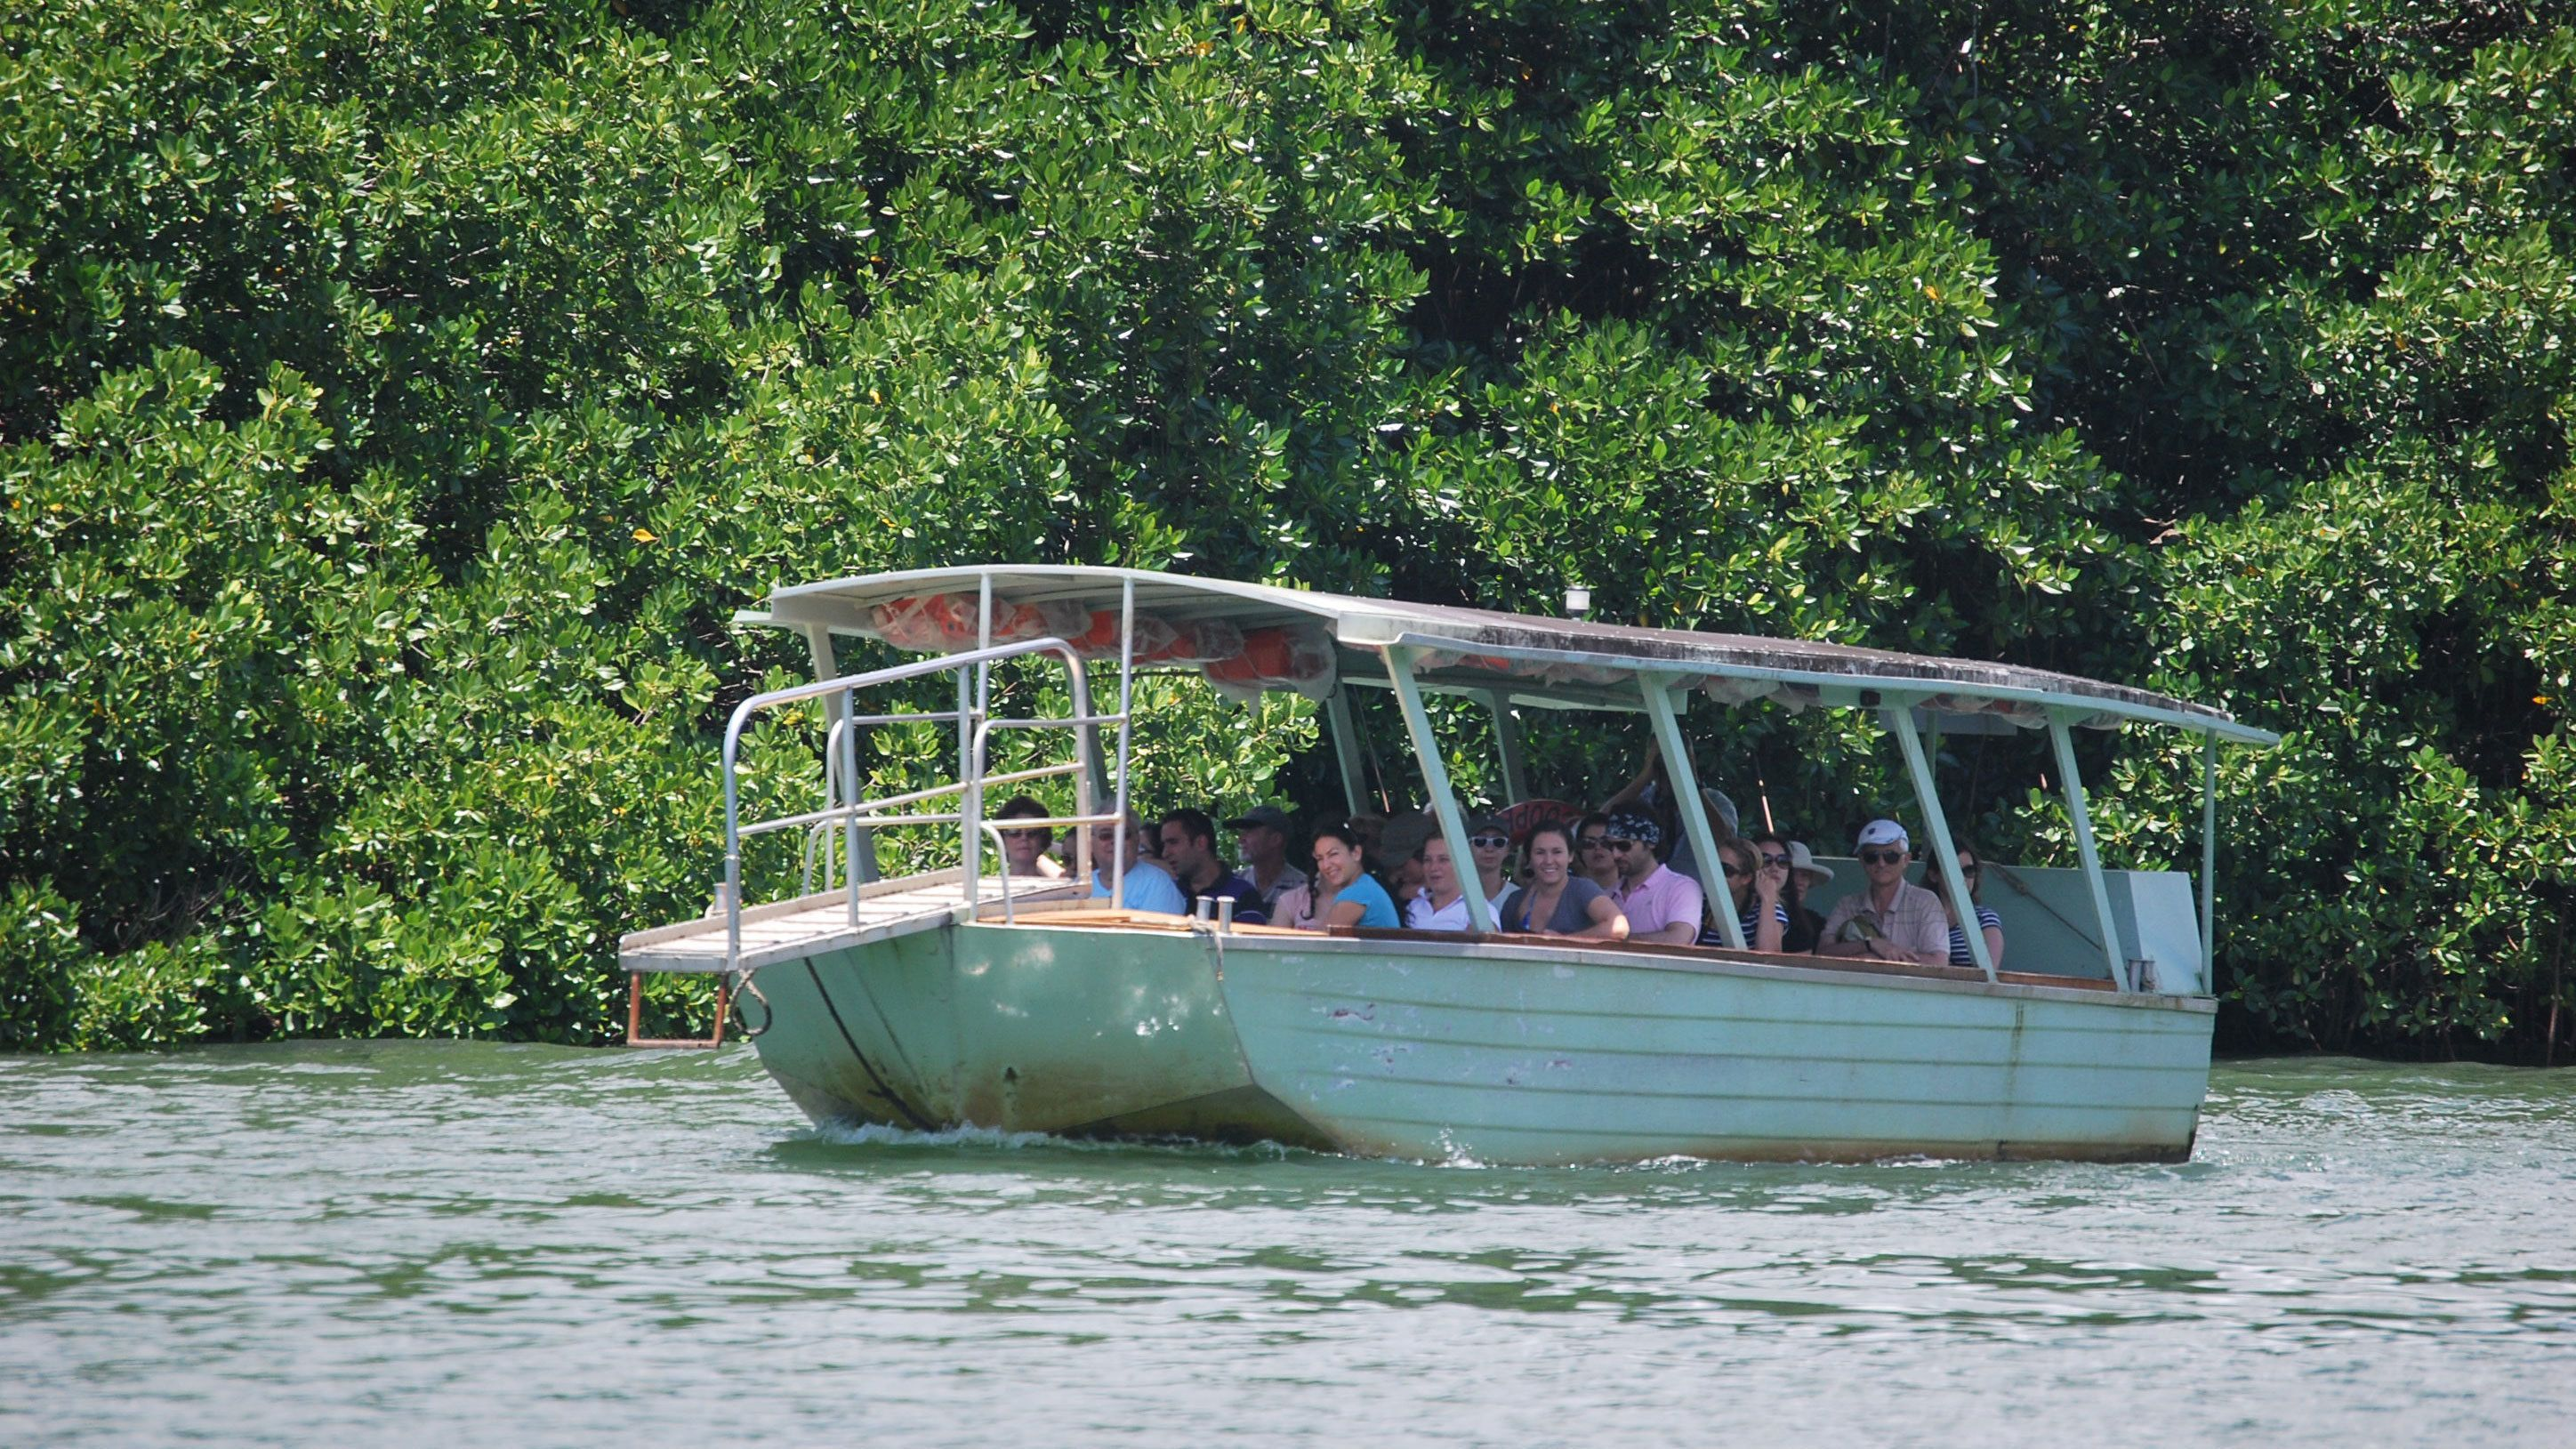 Boat used on the Daintree Rainforest Tour in Cairns Australia